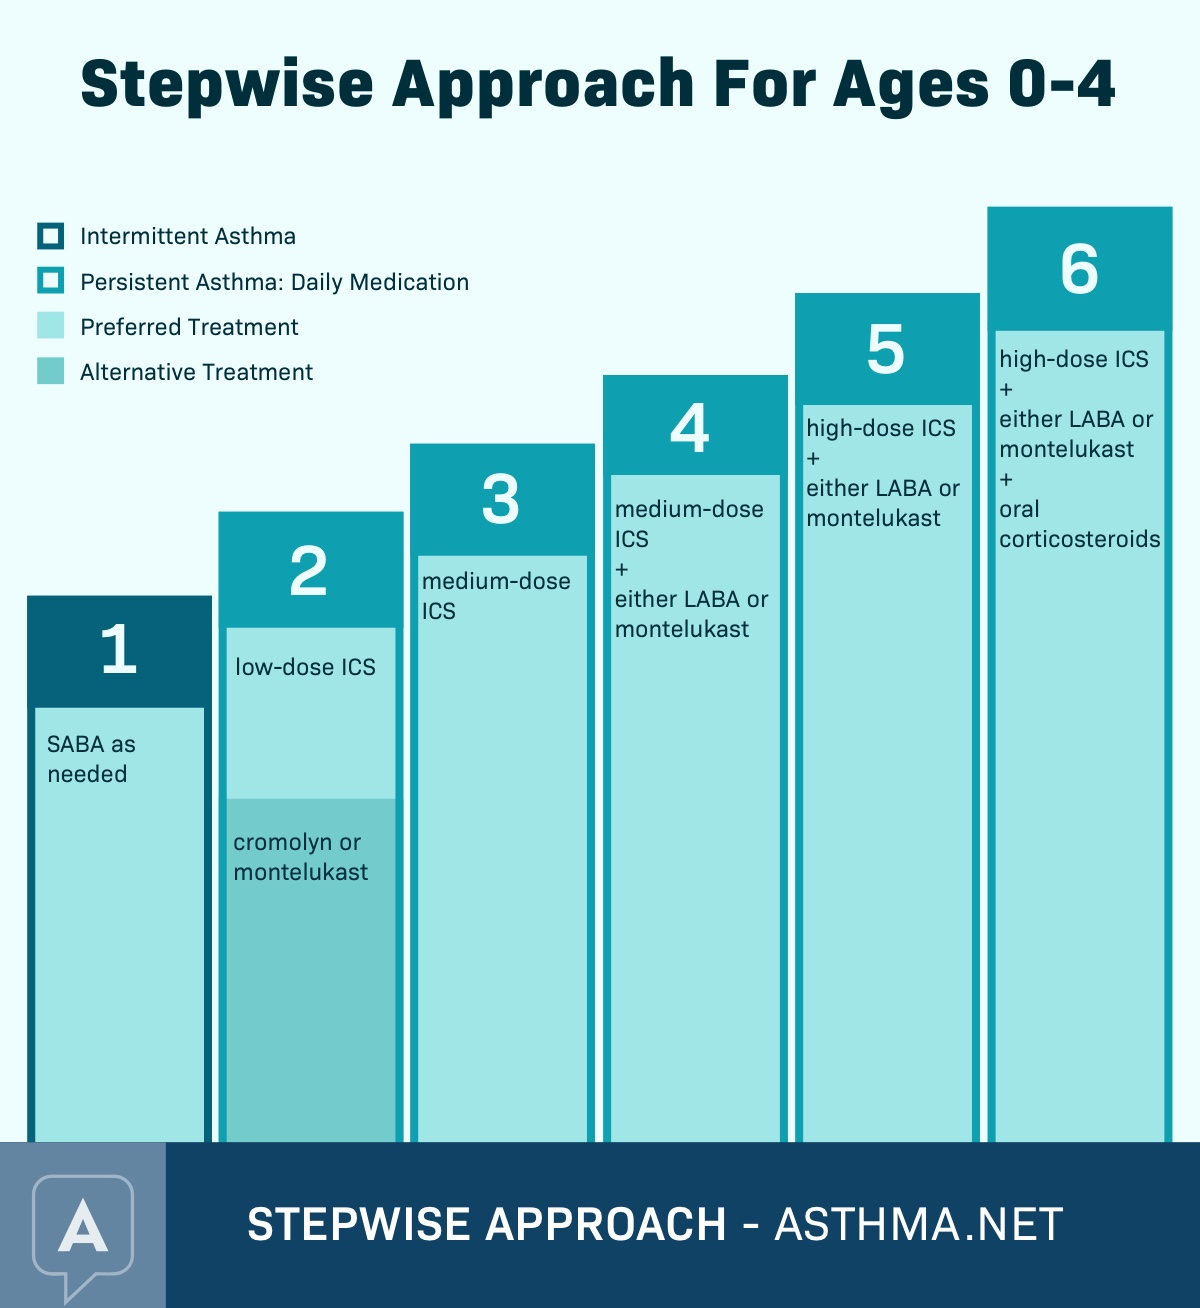 Stepwise Approach For Ages 0-4